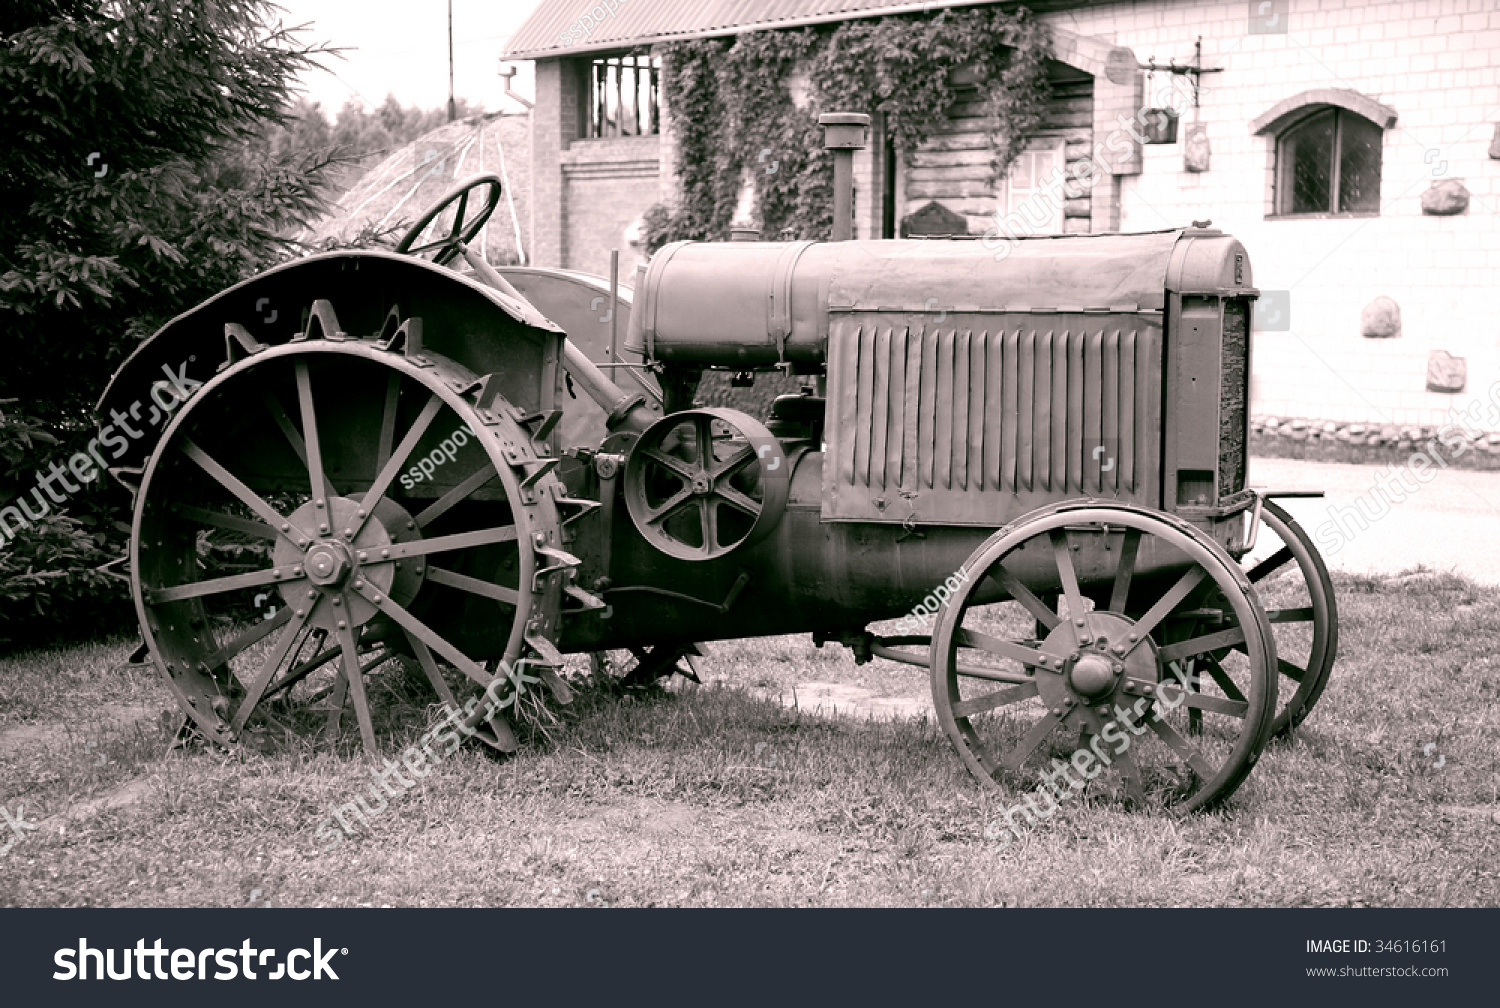 Iron Tractor Wheels : Old tractor with iron wheels is thrown on a roadside stock